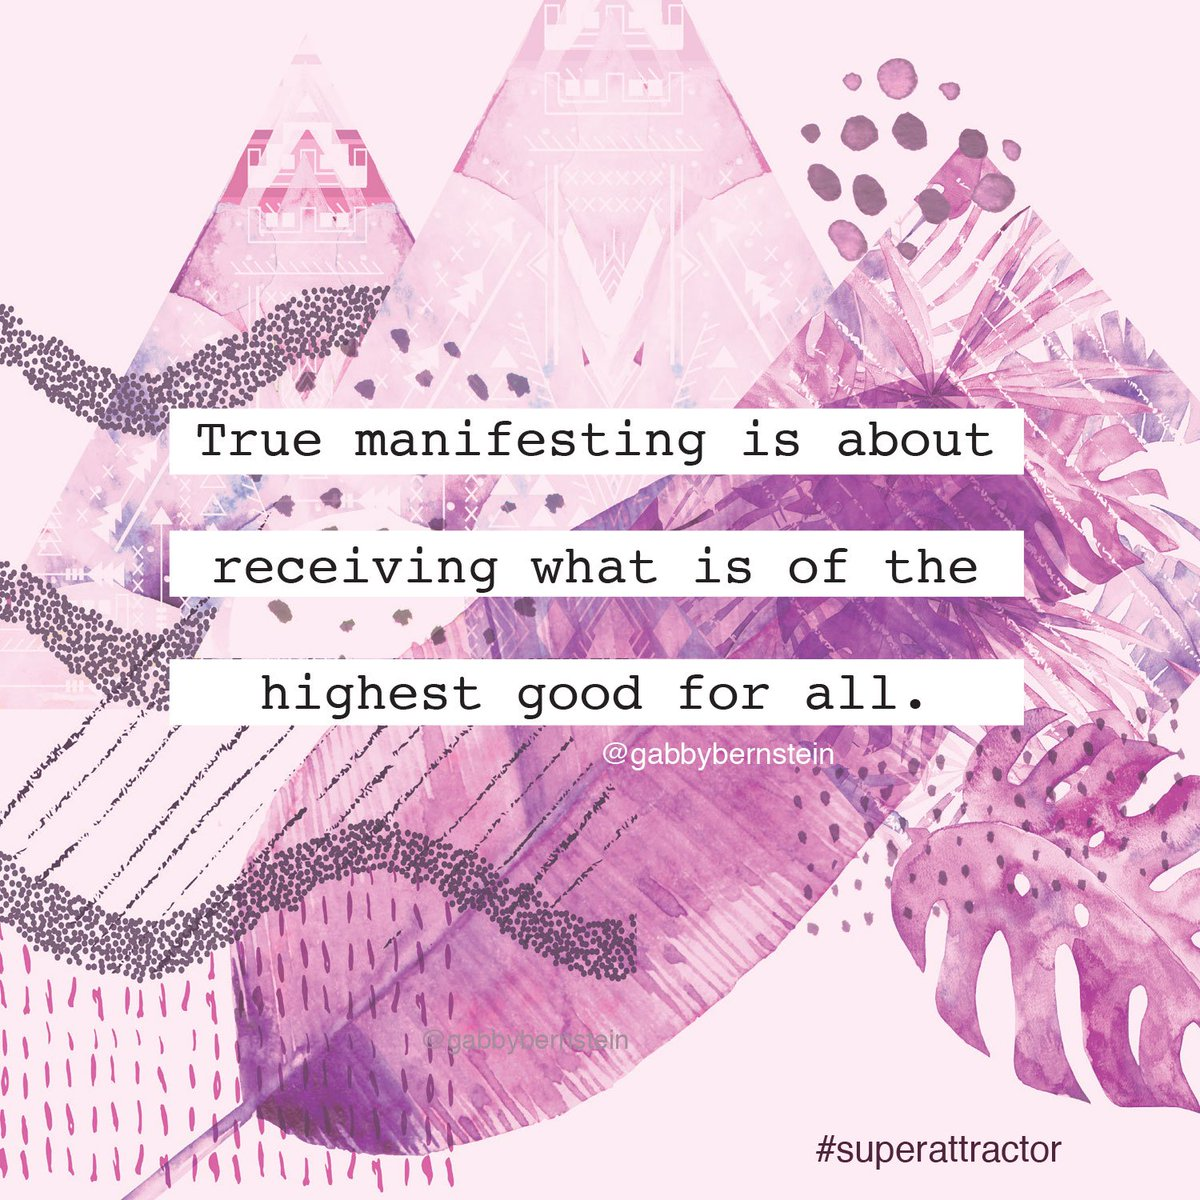 Surrender to the art of manifesting. Trust that spirit is guiding you toward your desires and so much more. #superattractor